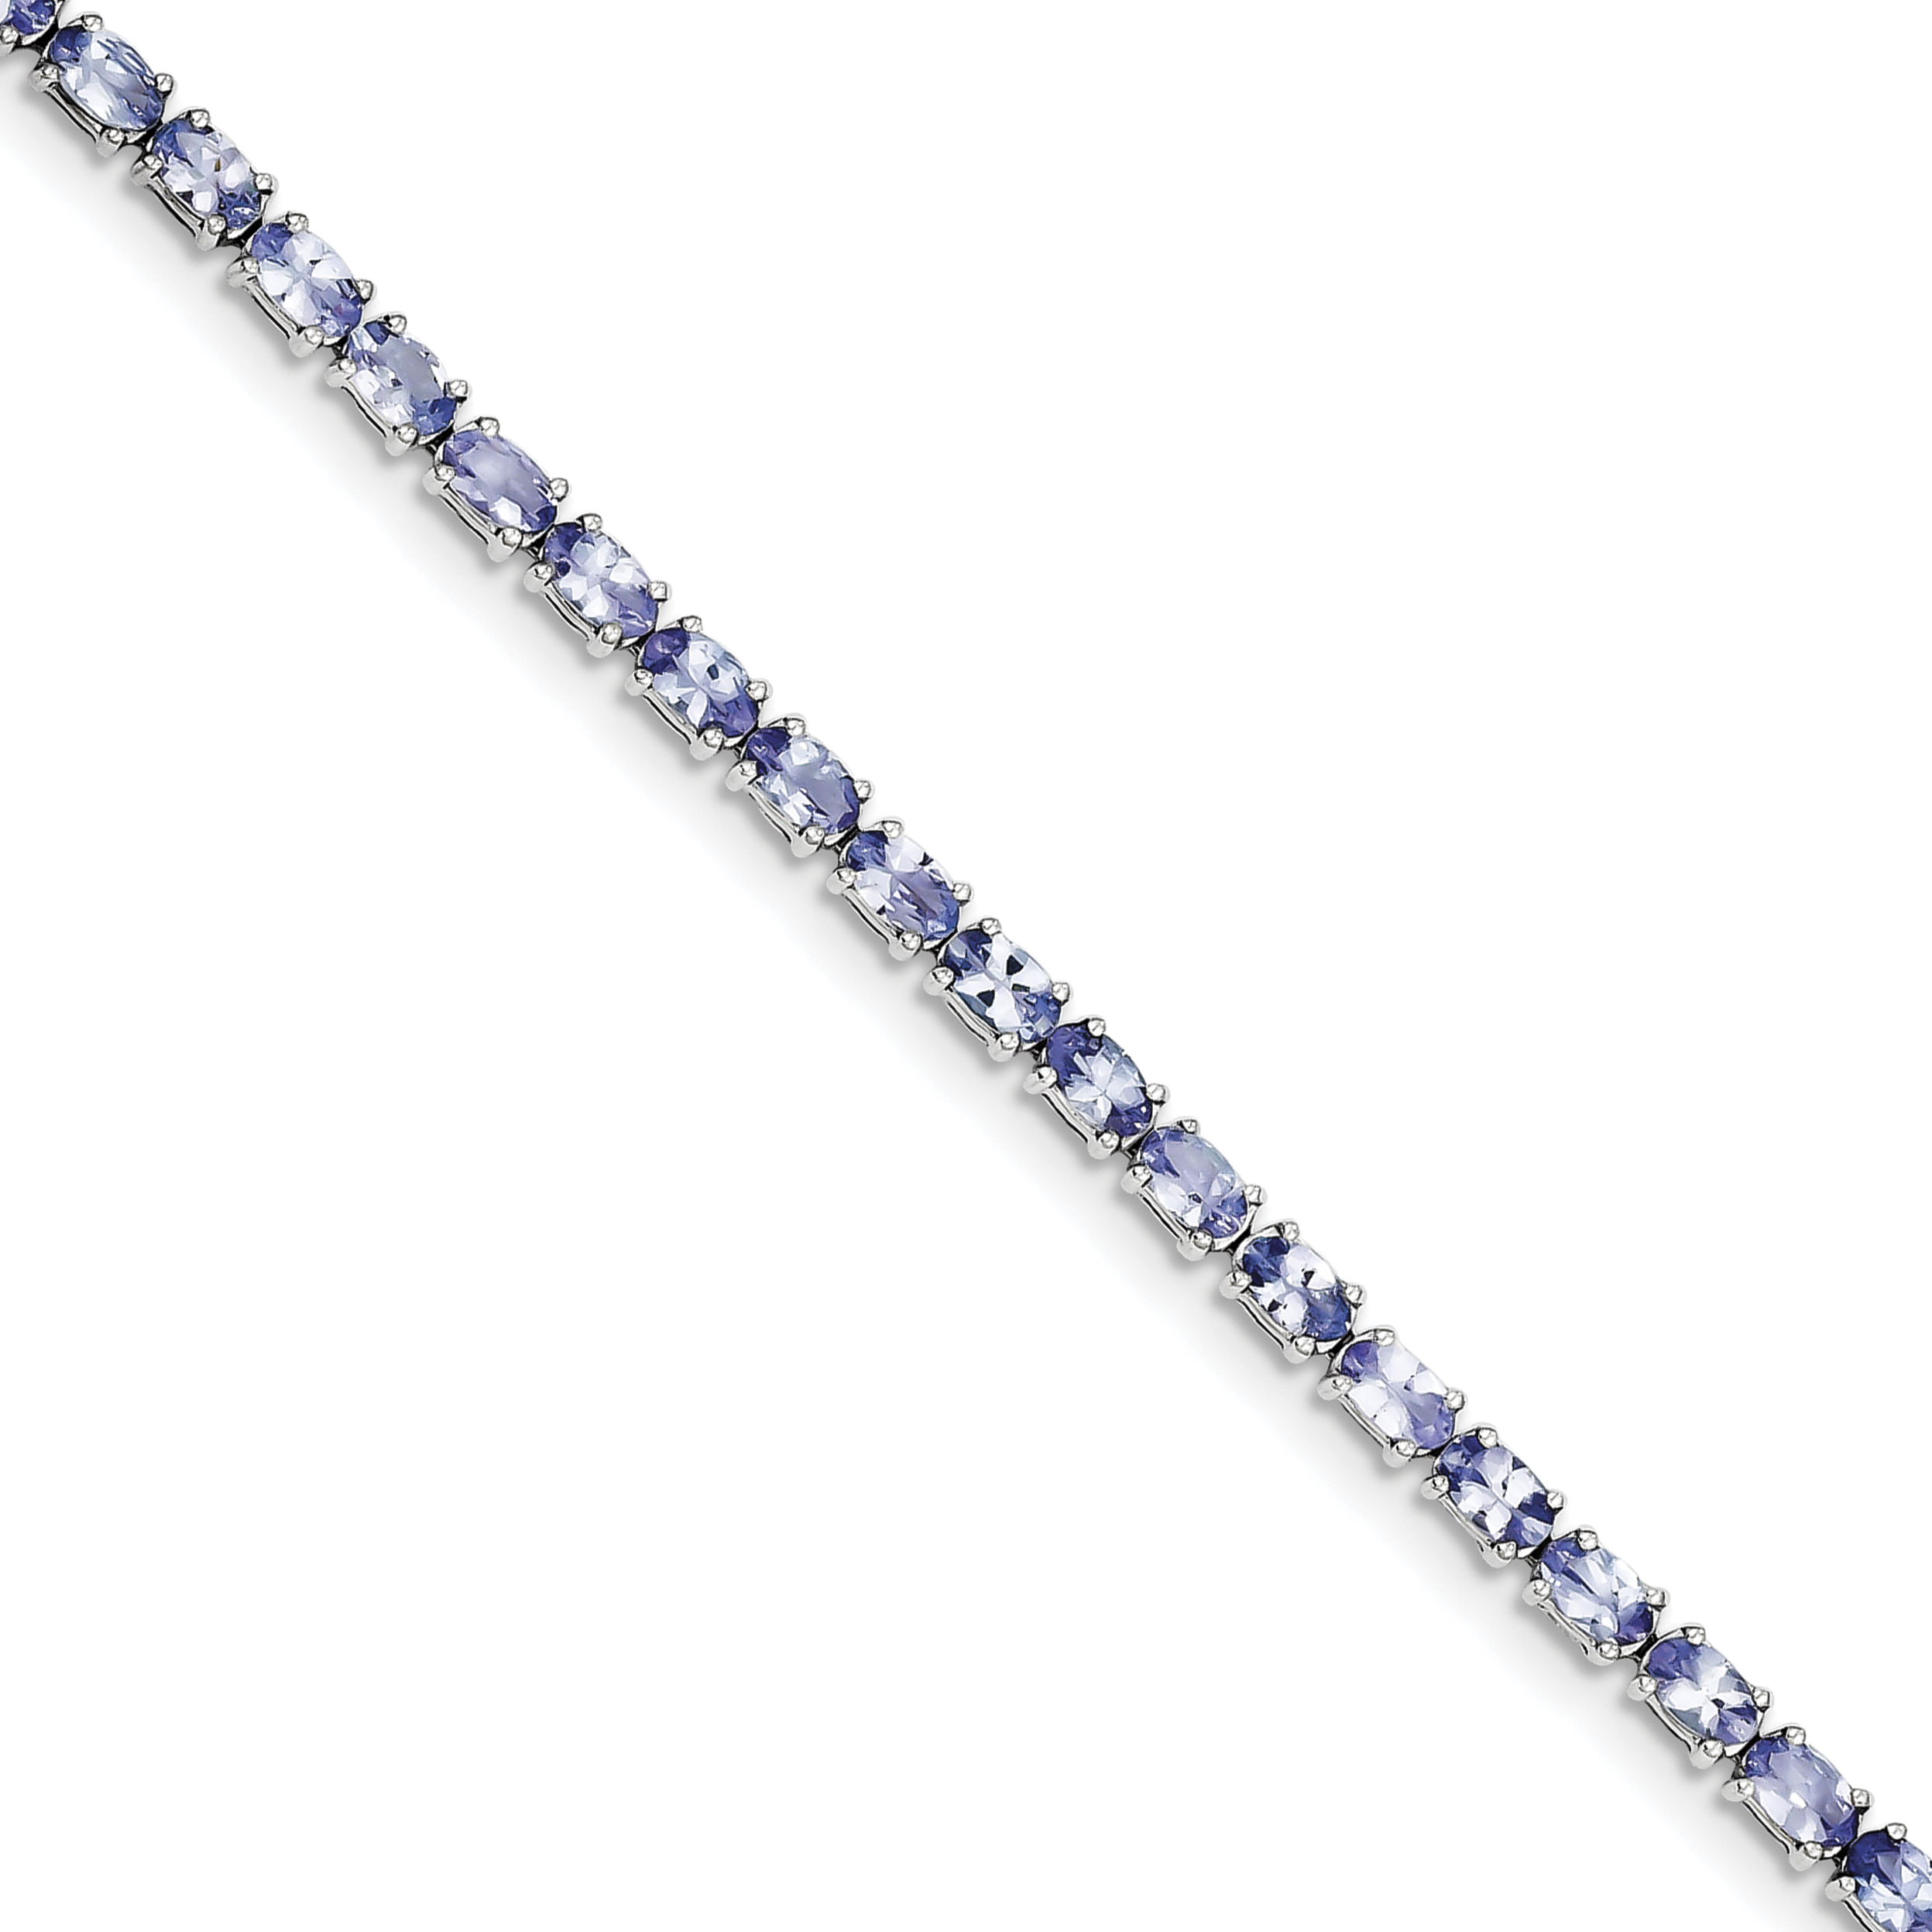 Roy Rose Jewelry Sterling Silver Tanzanite Bracelet ~ Length 8.25'' inches by